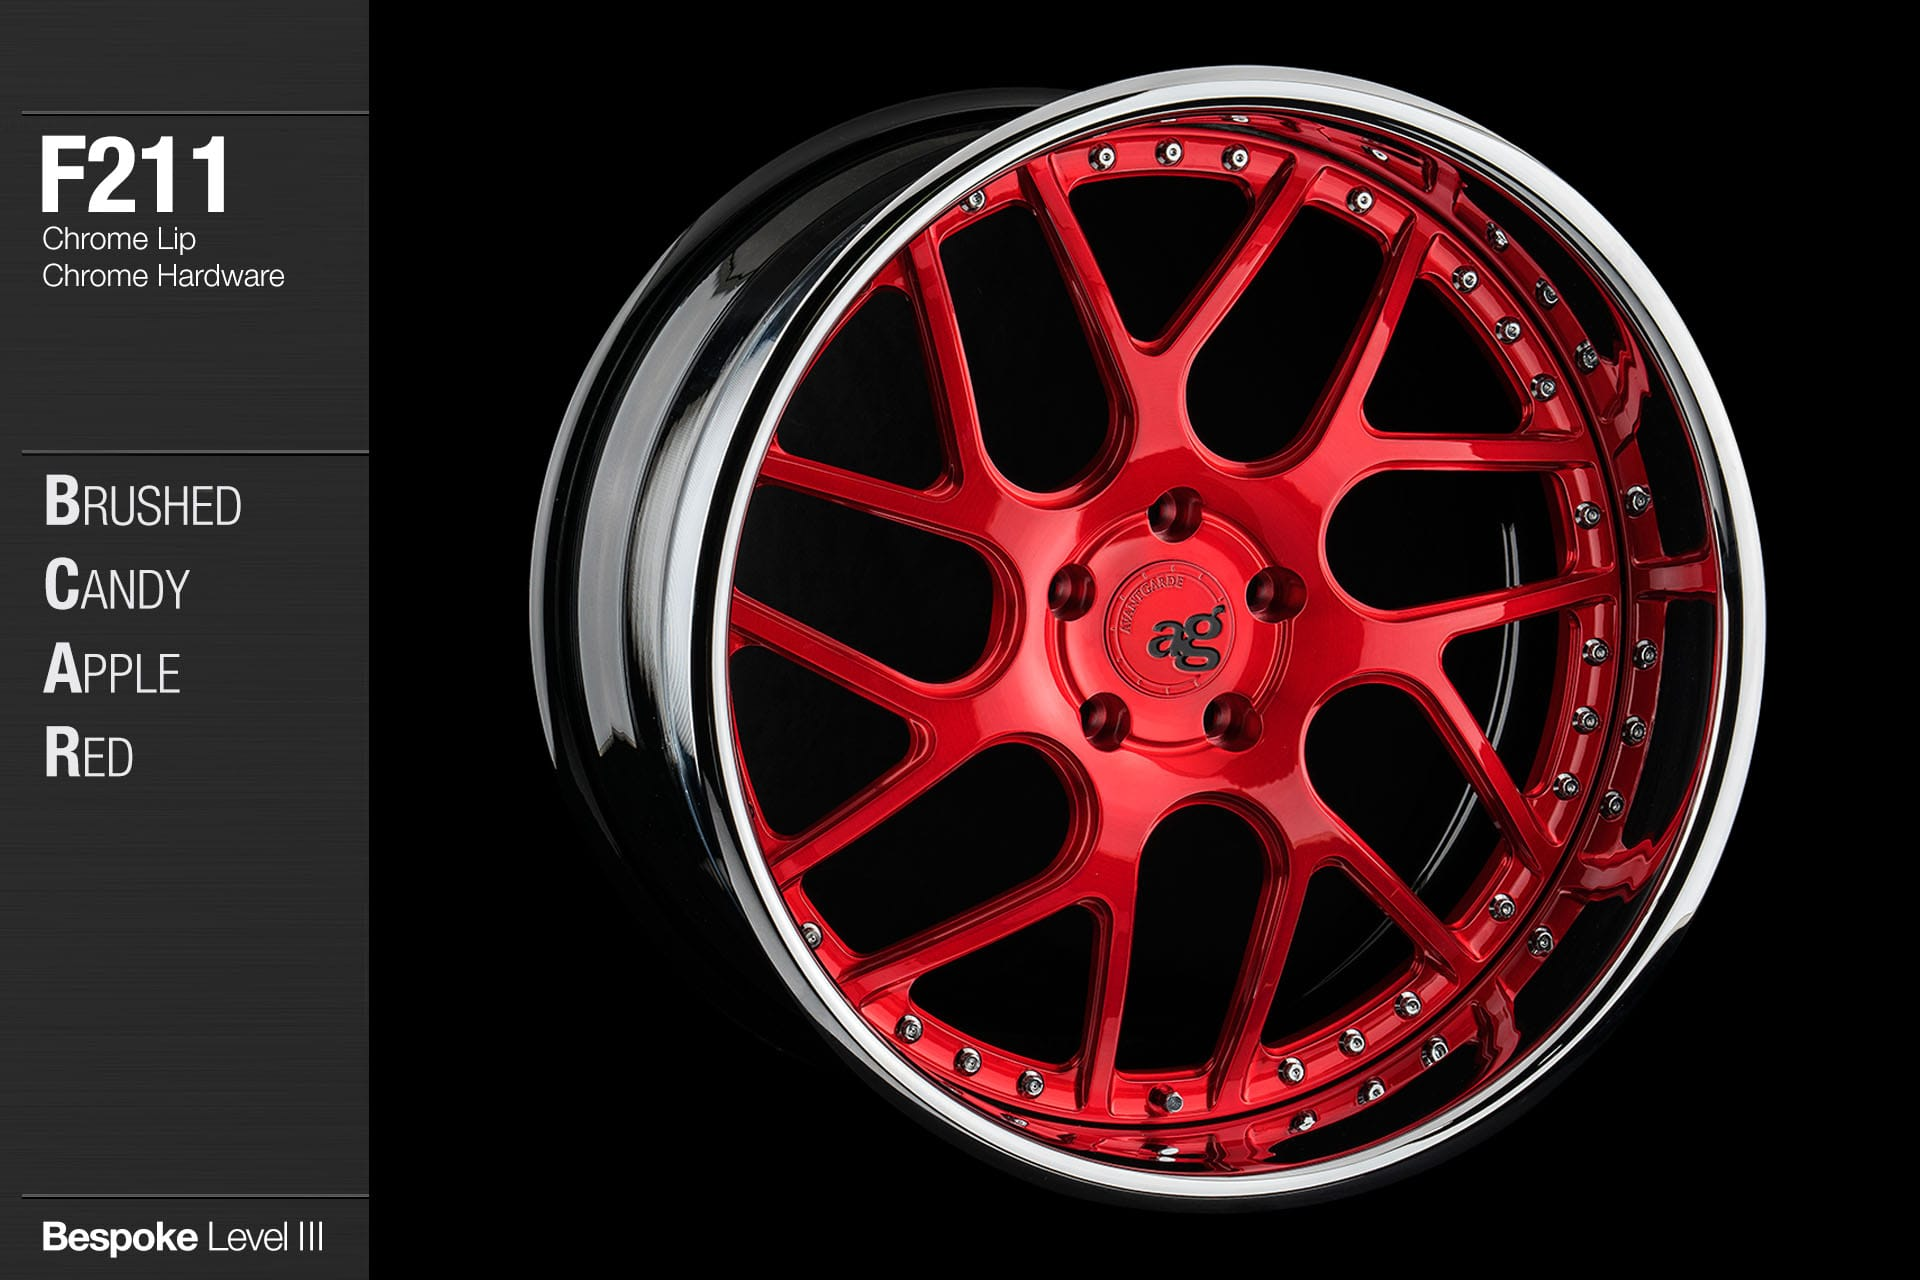 agwheels ag wheel wheels avant garde f211 brushed candy apple red chrome lip hardware forged wheels forge 3piece 3 piece 19inch 20inch